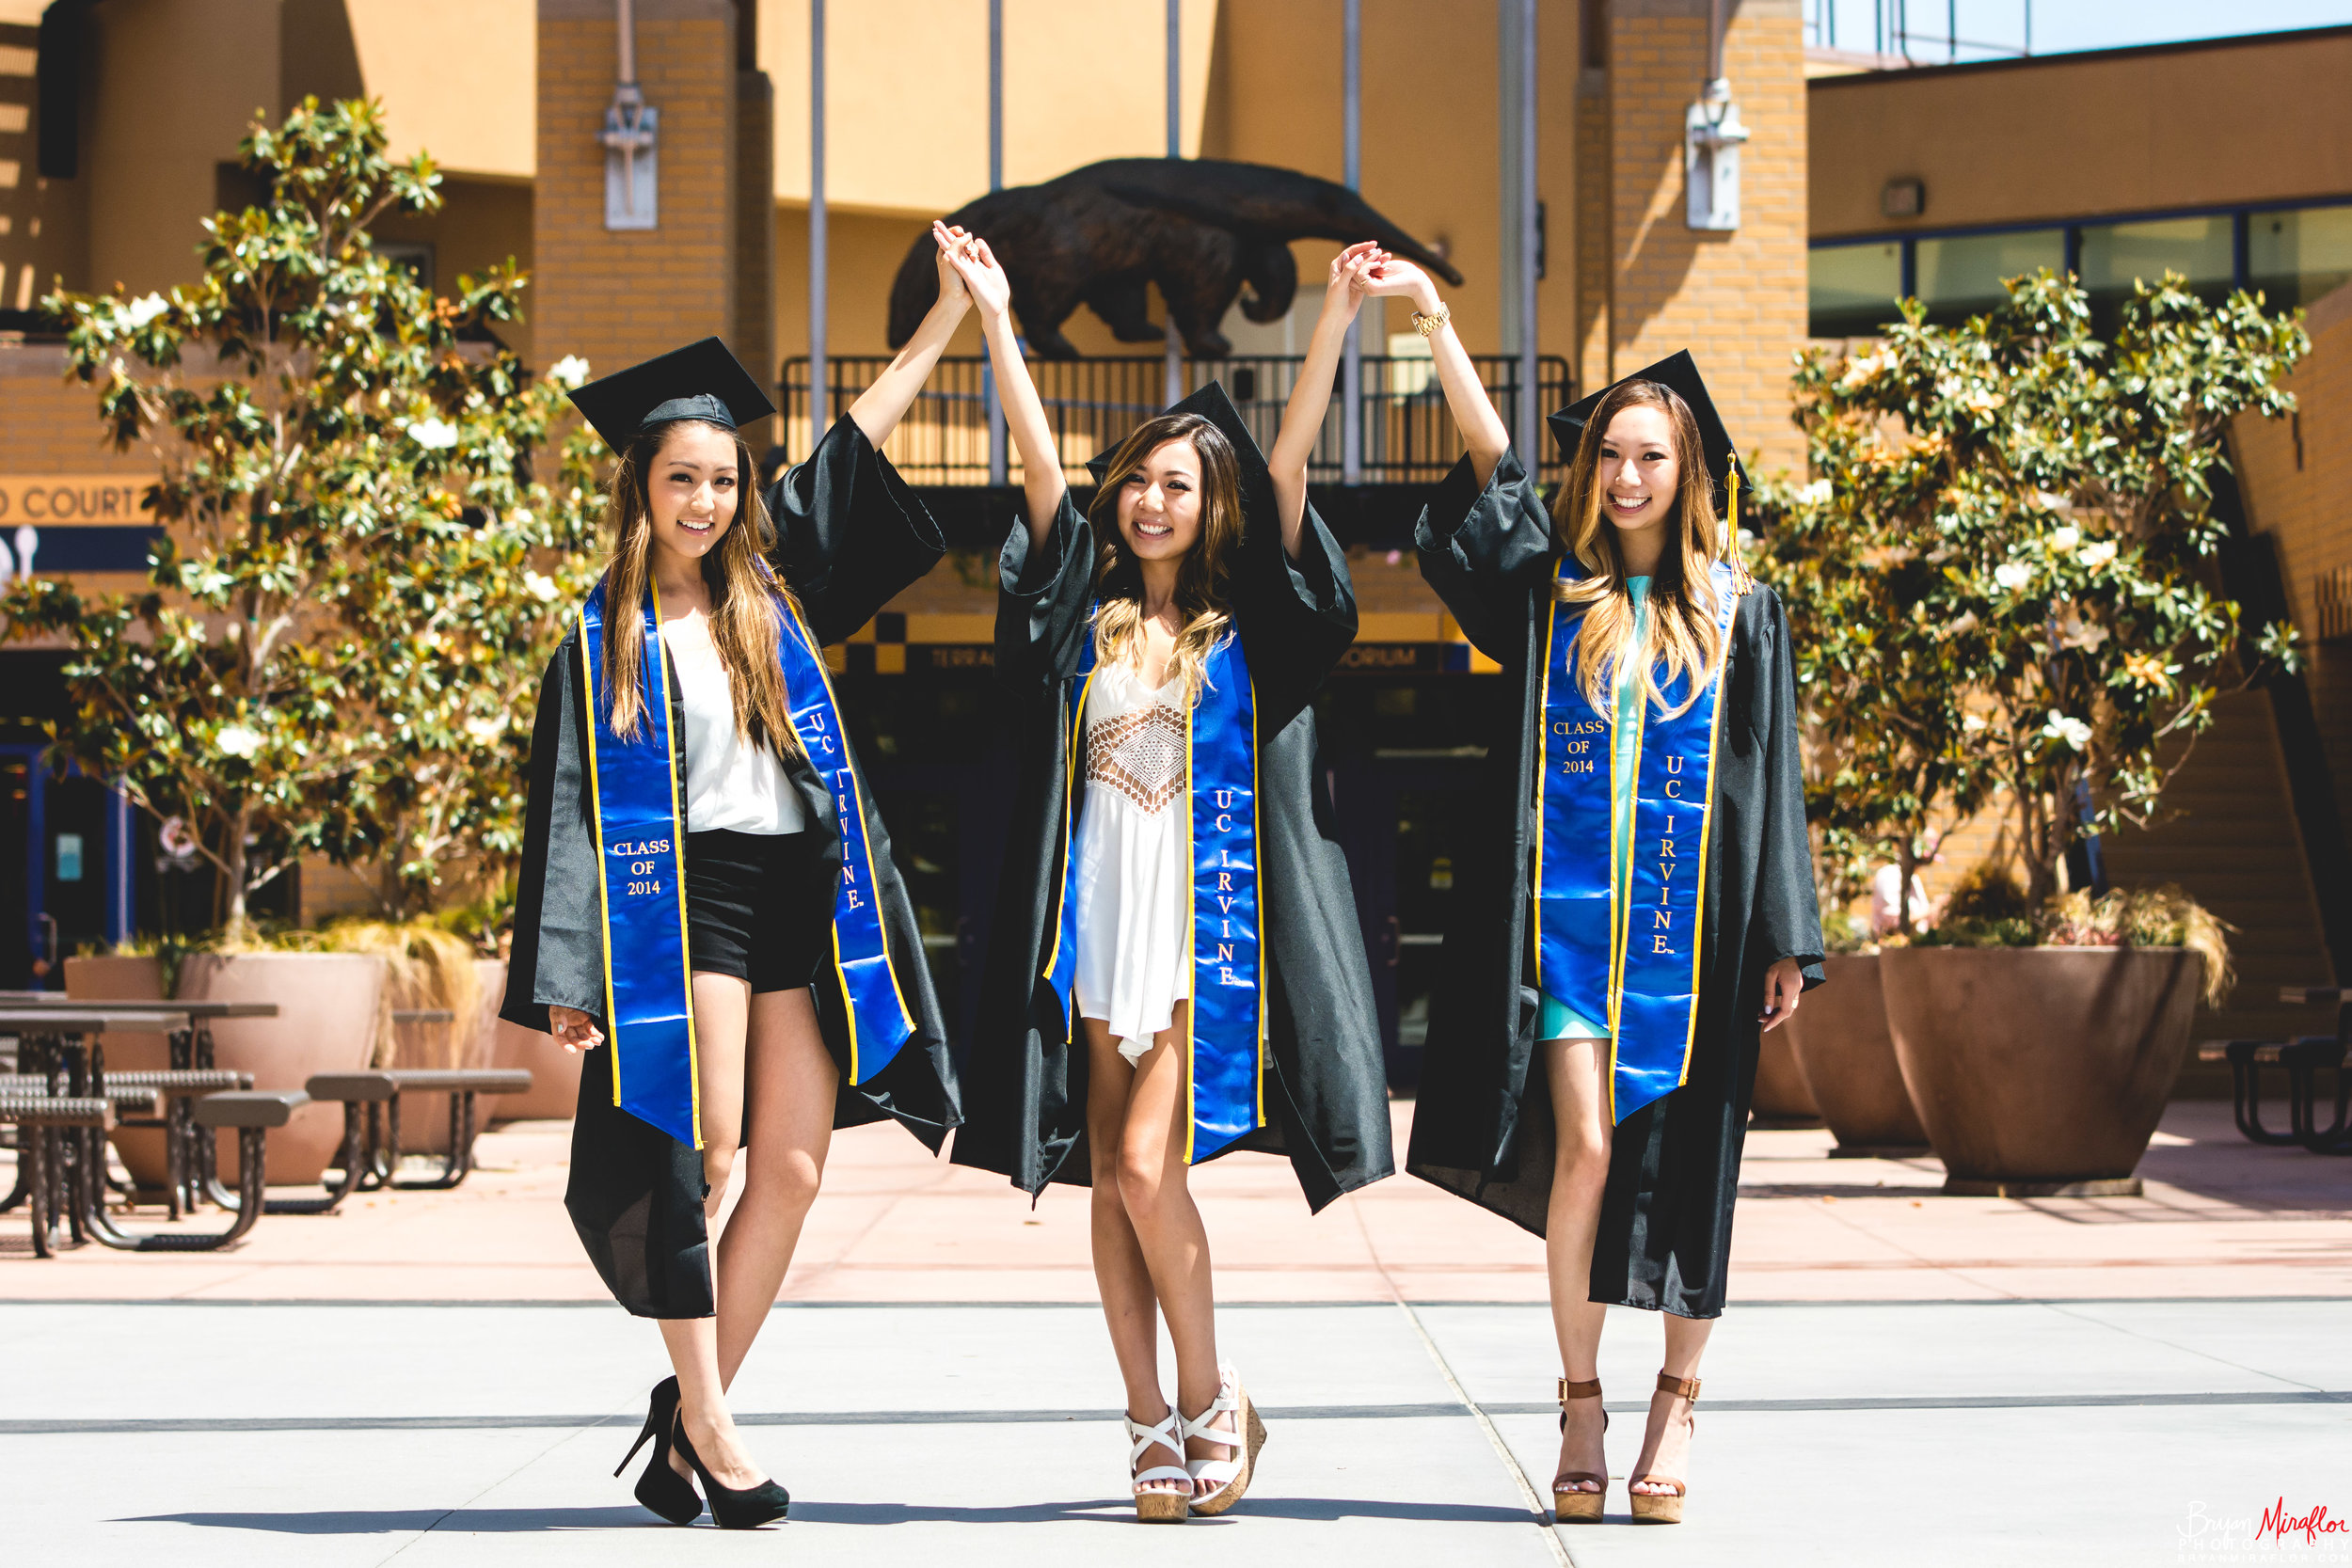 0191-Bryan-Miraflor-Photography-Group-Shawna-Nancy-Lizzy-Grad-Photoshoot-UCI-20140607-0023.jpg